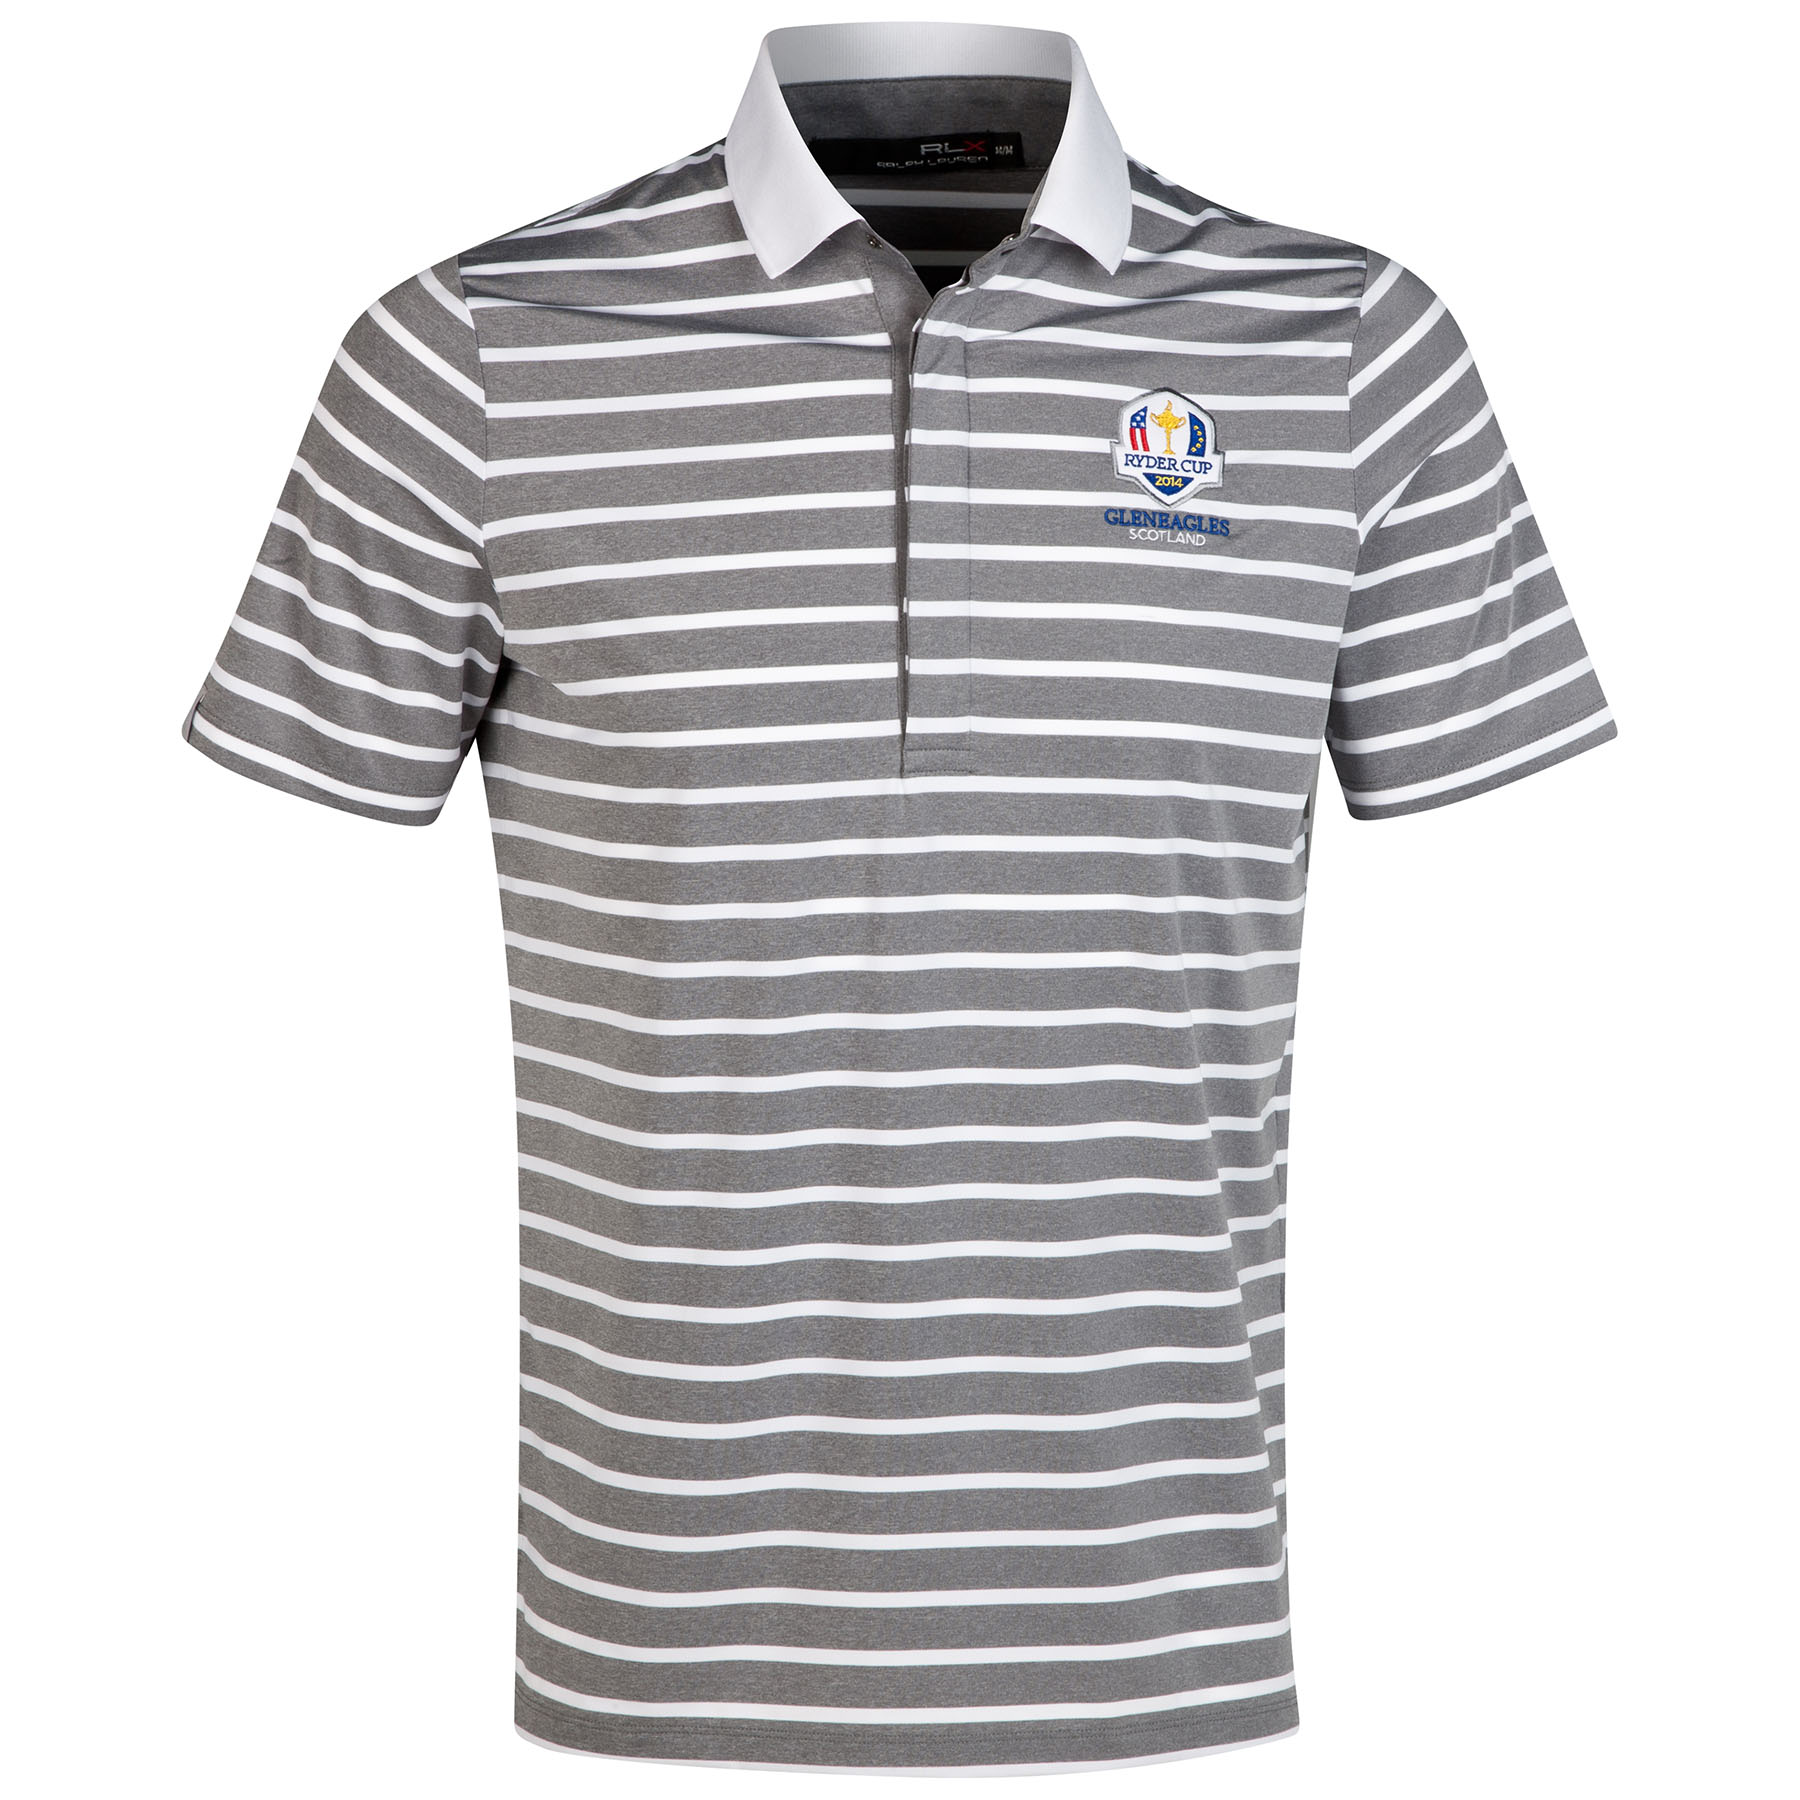 The 2014 Ryder Cup Ralph Lauren Striped Airflow Polo - Everest Heather/Pure White